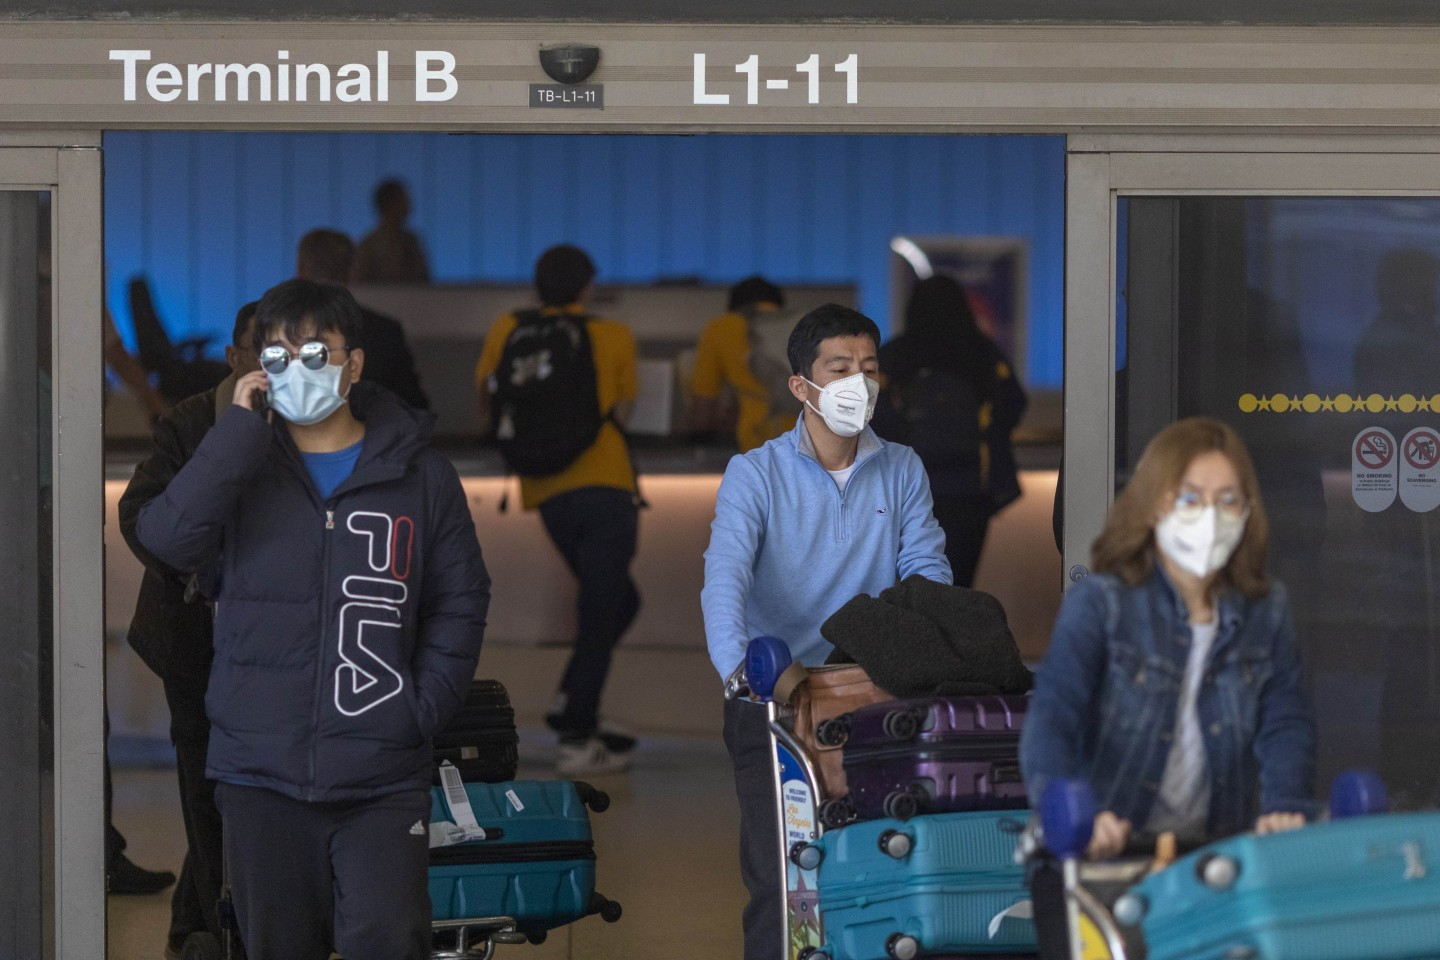 In this photo taken on 2 February 2020, travelers arrive at LAX Tom Bradley International Terminal wearing medical masks for protection against the coronavirus outbreak. Foreign nationals who have been in China in the last two weeks and are not immediate family members of US citizens or permanent residents will be barred from entering the US. (David McNew/Getty Images/AFP)